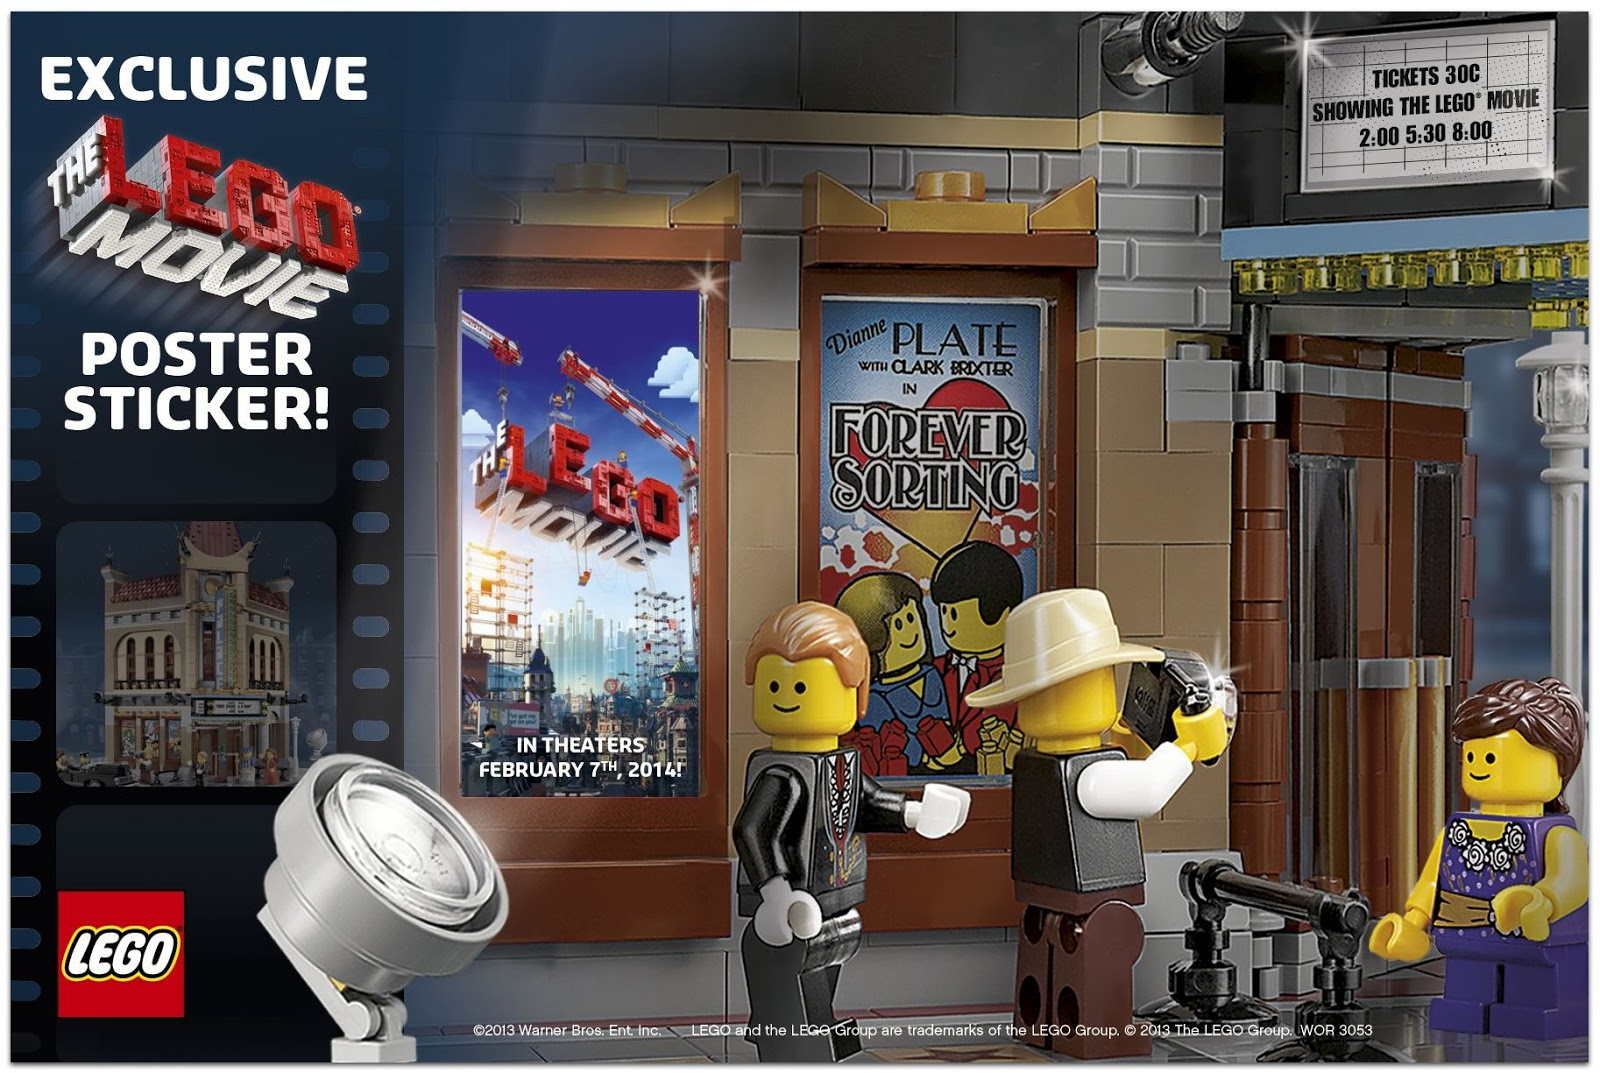 The Lego Movie poster sticker